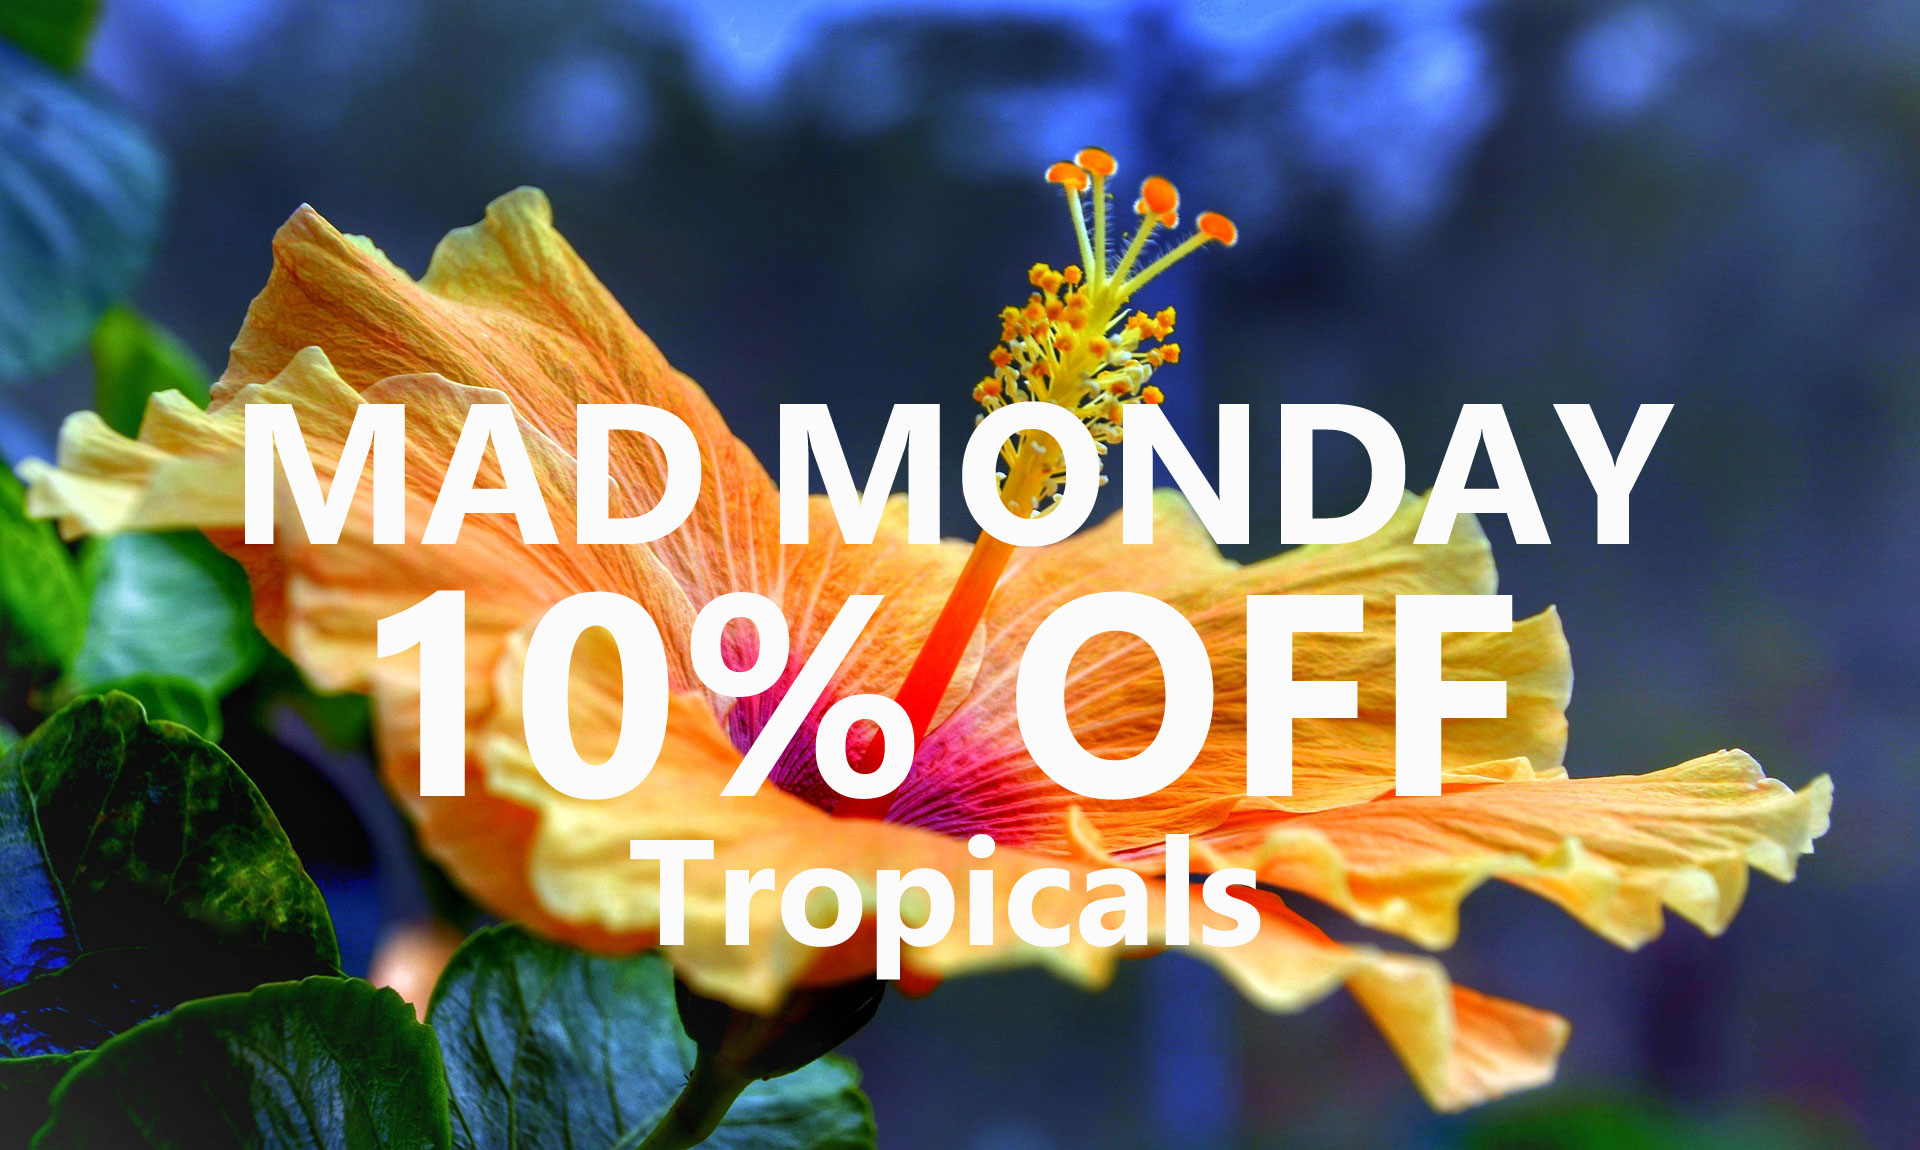 Mad-monday-10-percent-off-tropicals-reston-farm-market-va.jpg